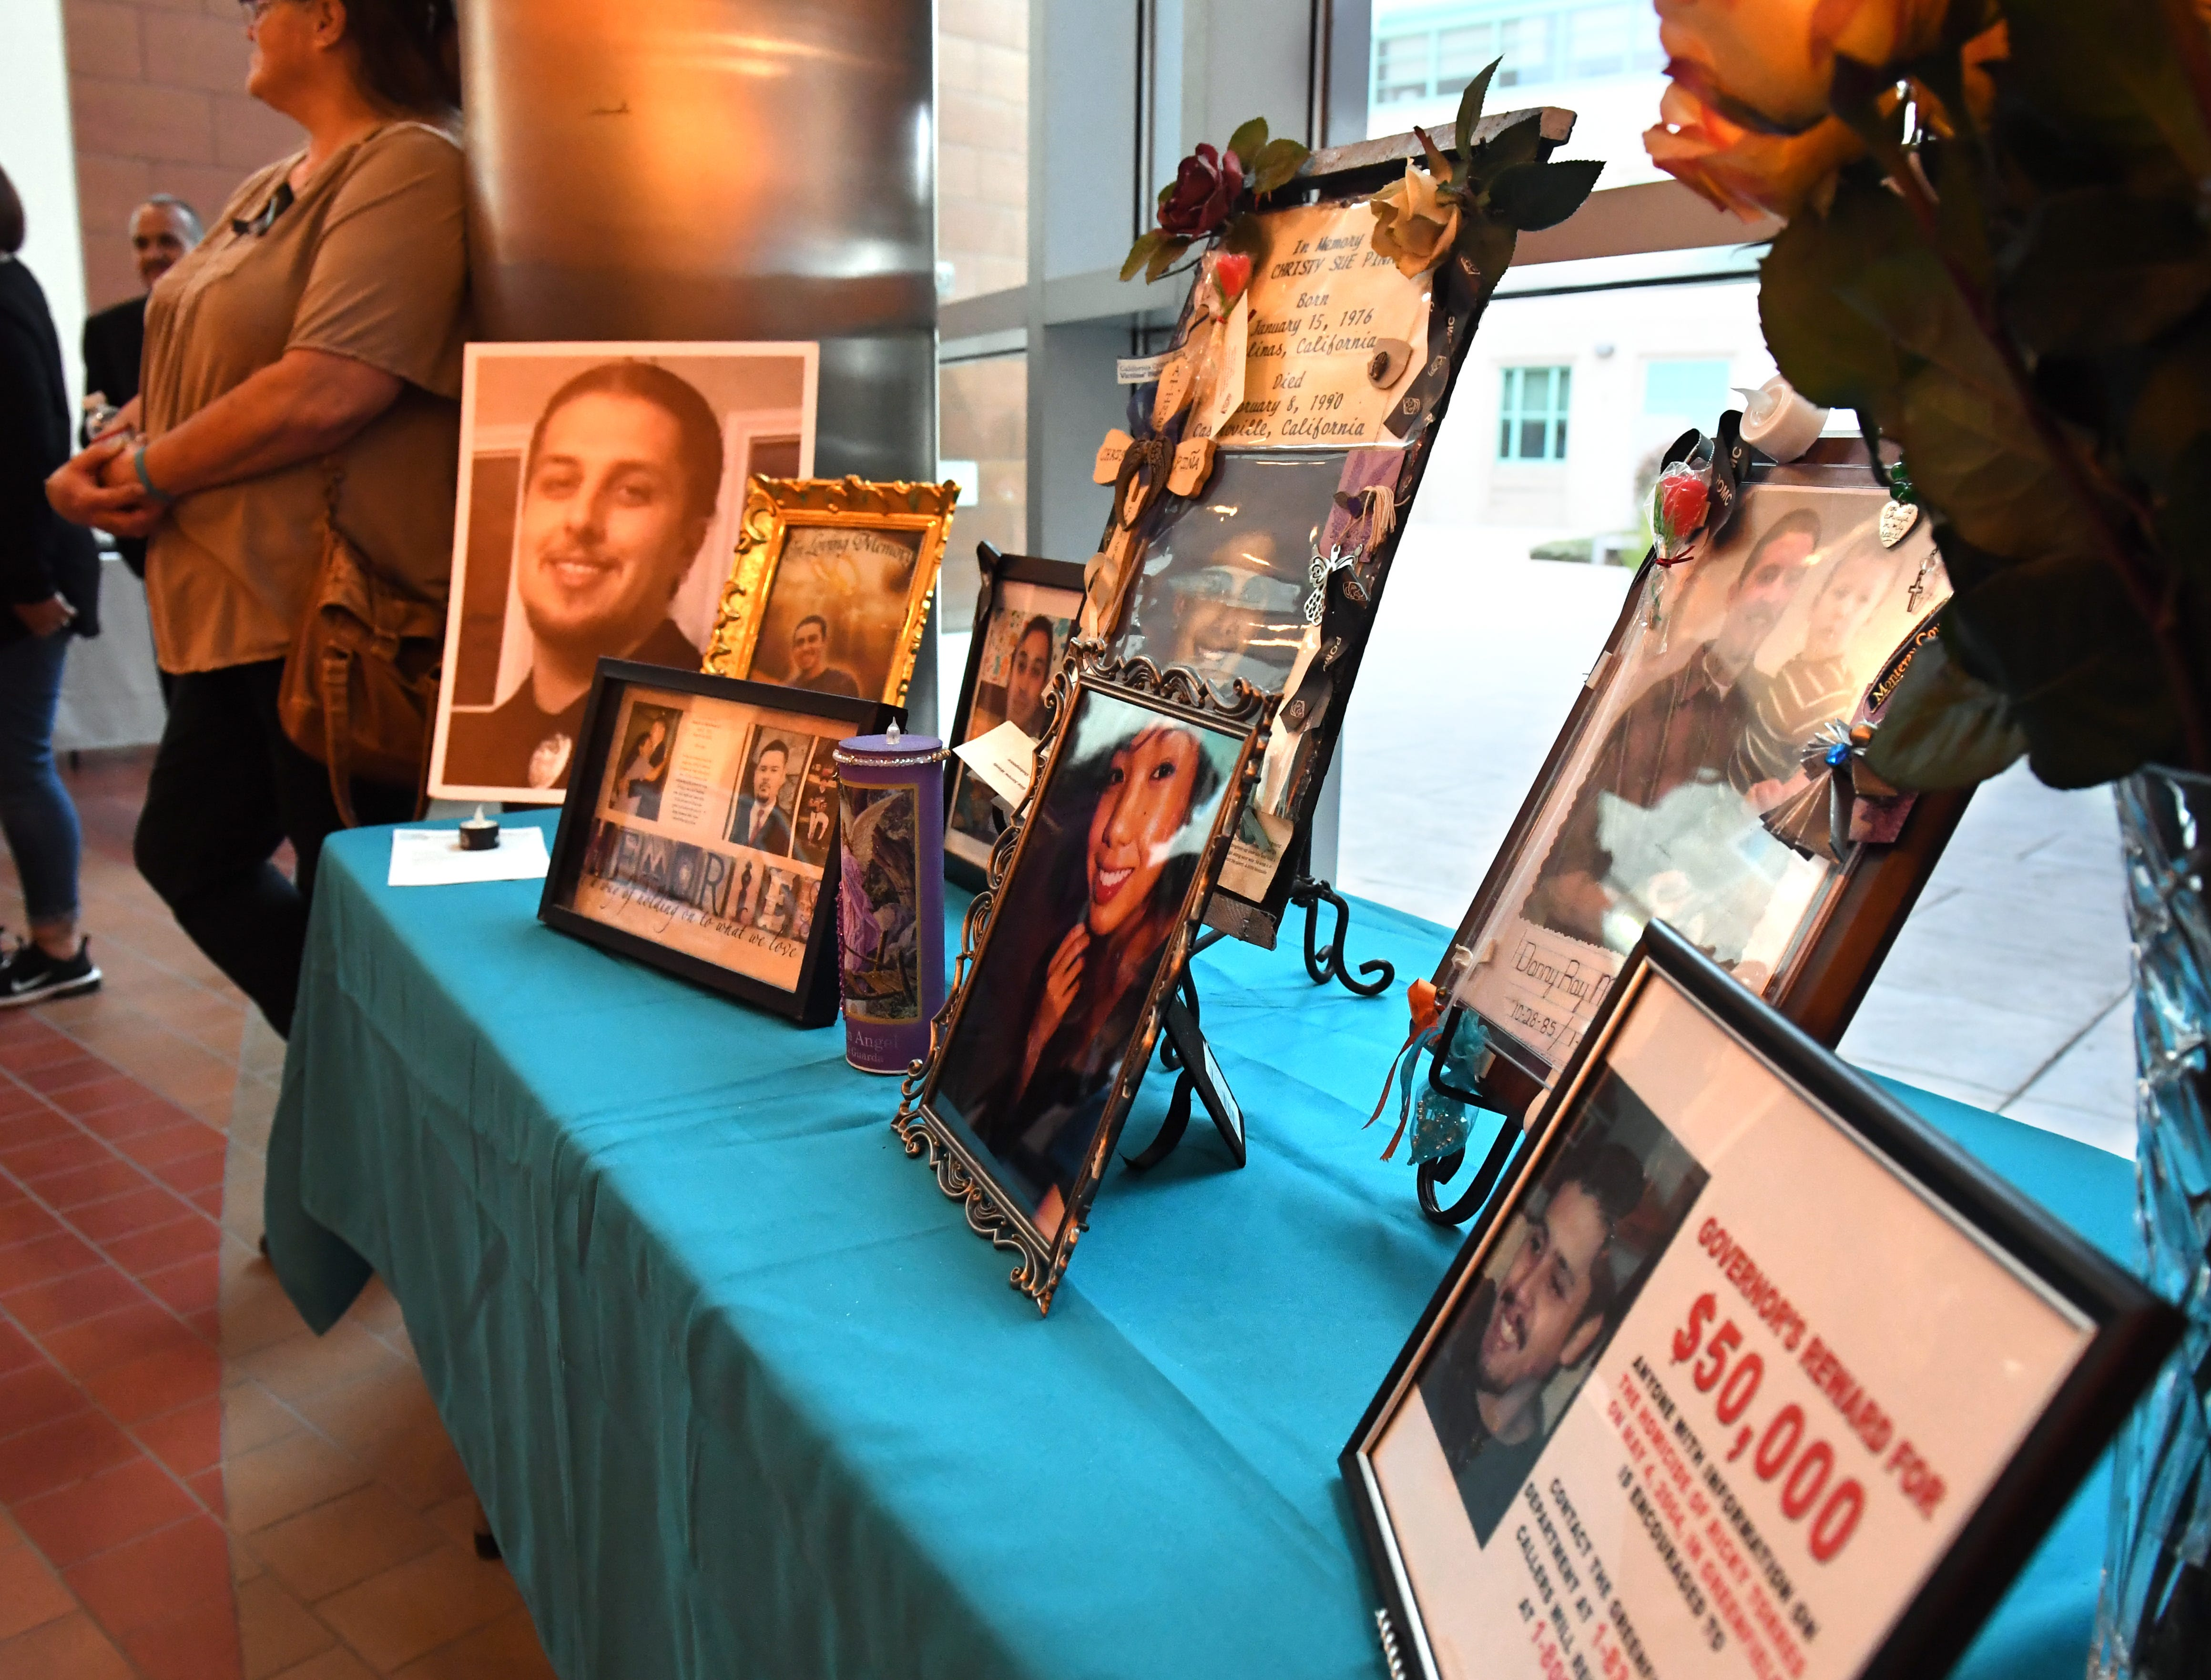 Pictures of loved ones lost to violence were on display at the National Day of Remembrance for Murder Victims ceremony Thursday.